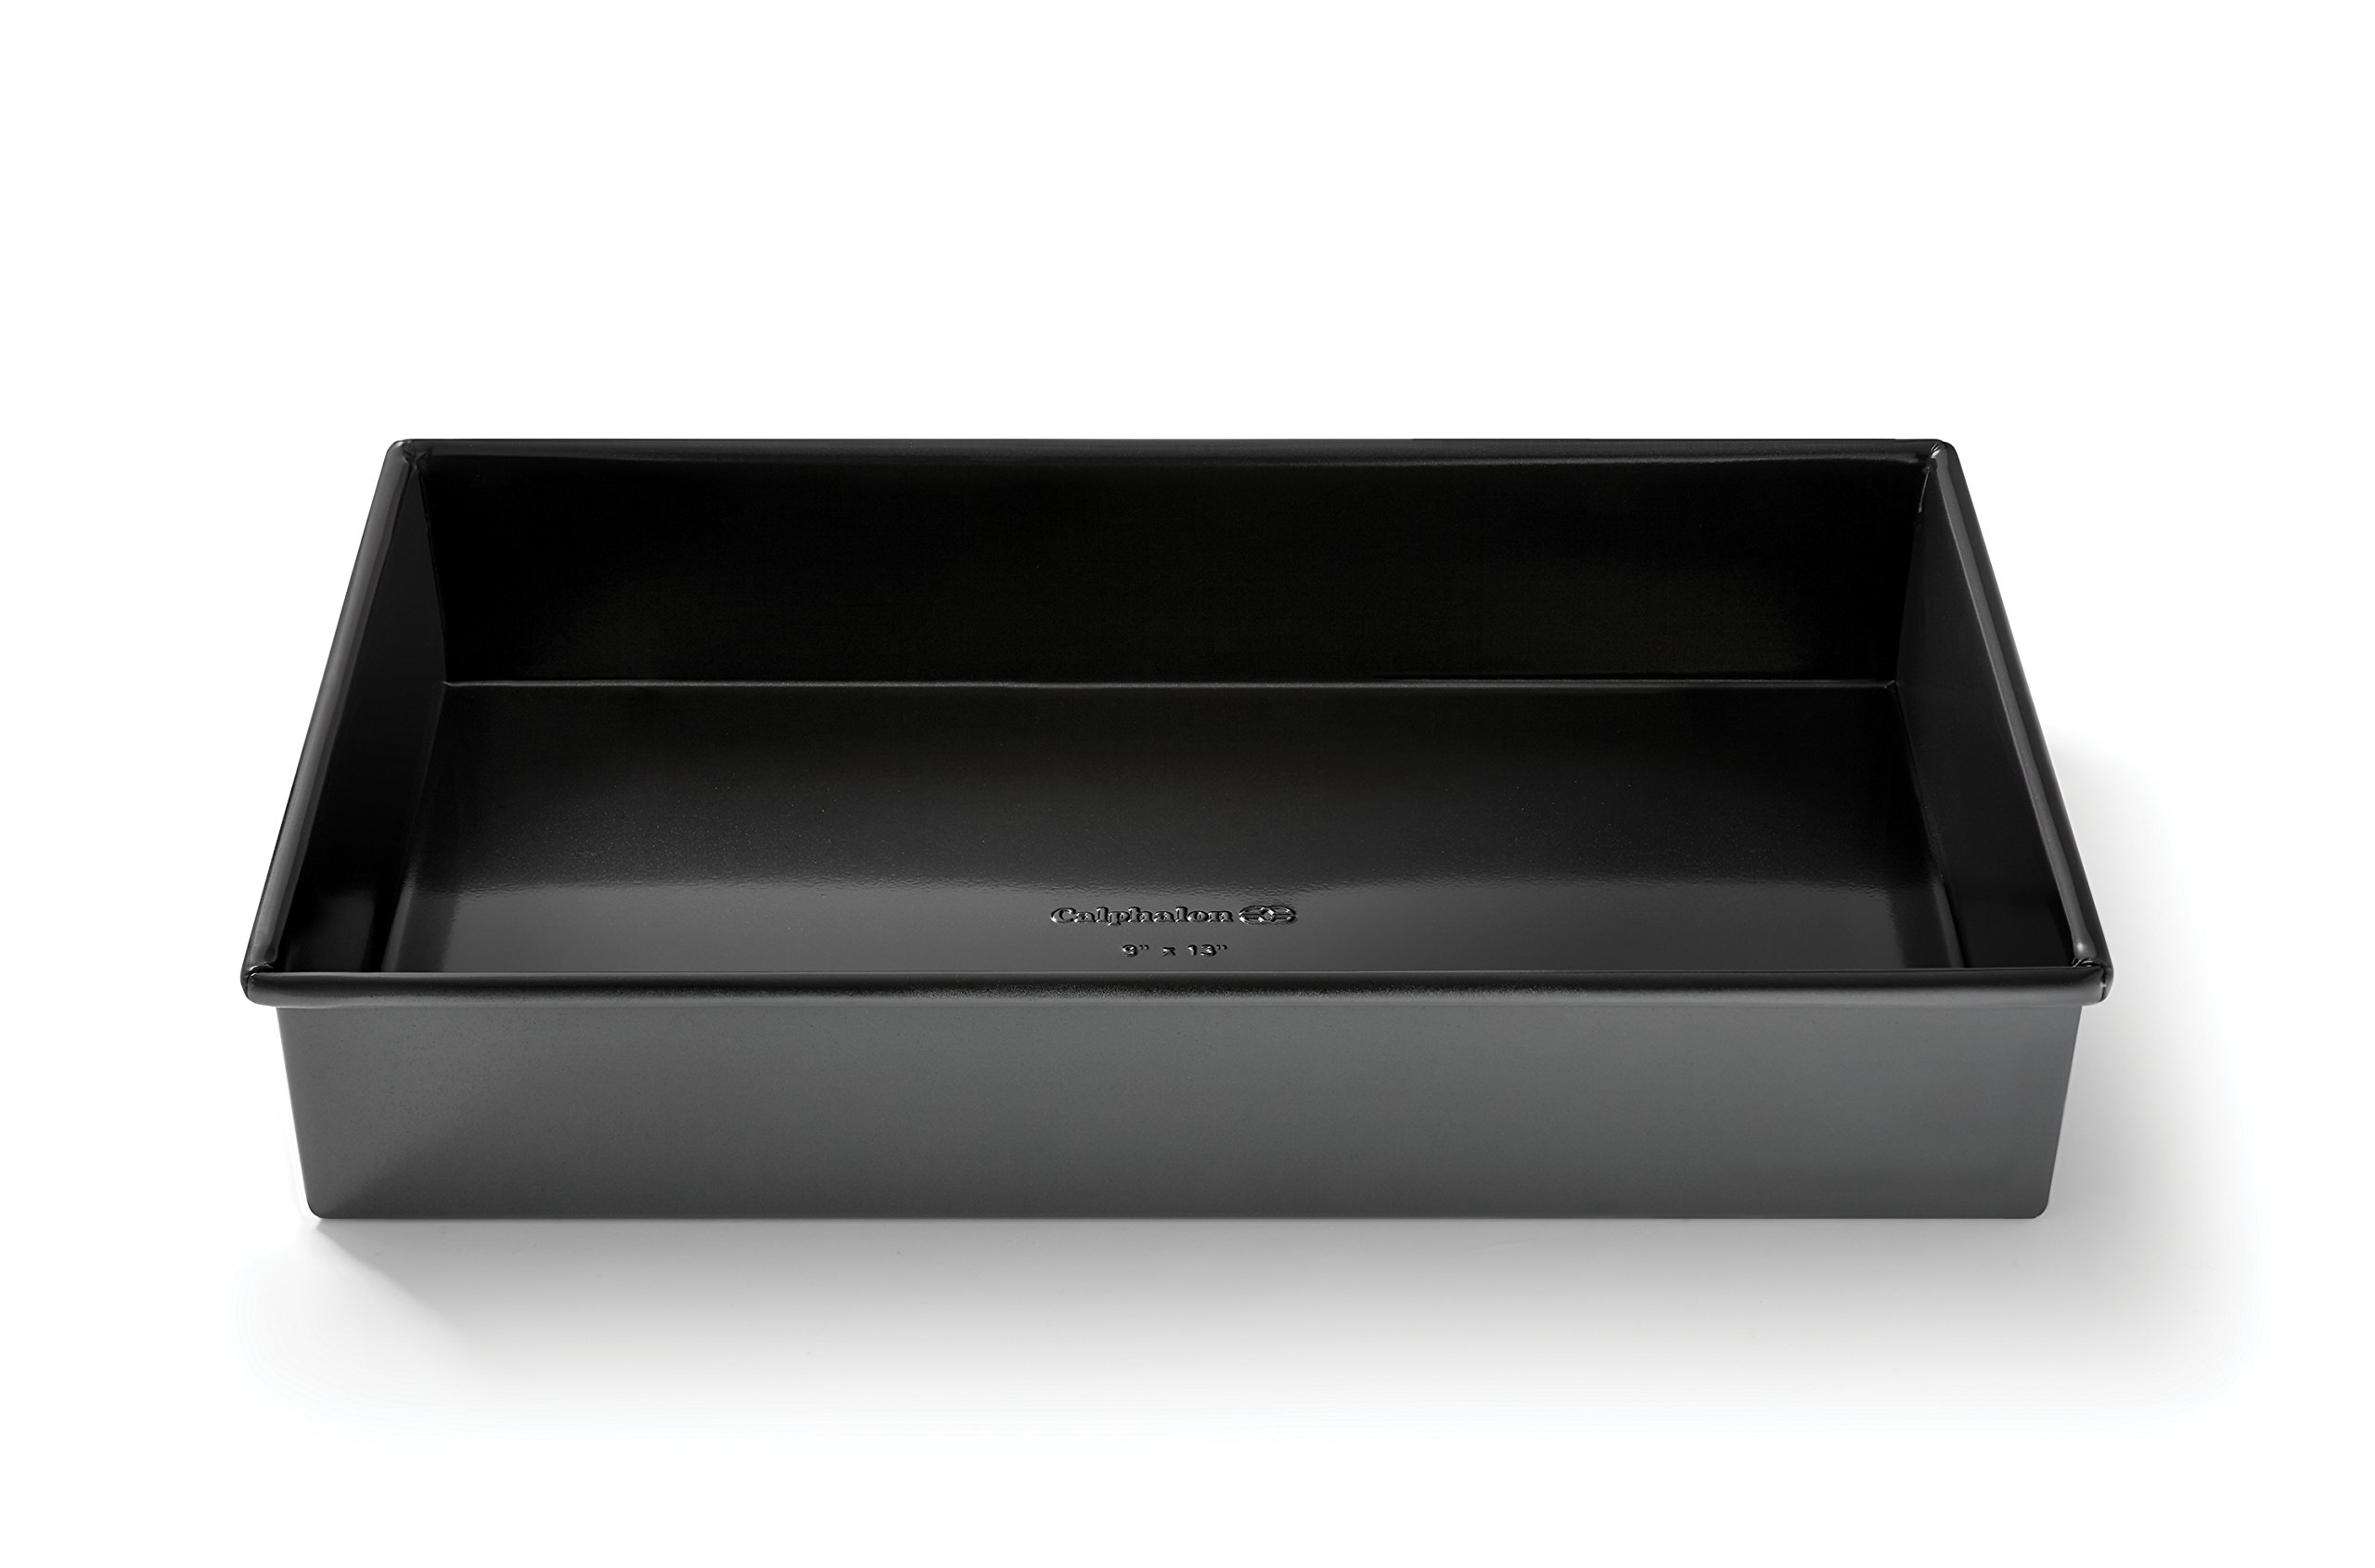 Calphalon Signature Nonstick Bakeware 9-in. x 13-in. Rectangle Cake Pan, 2000608